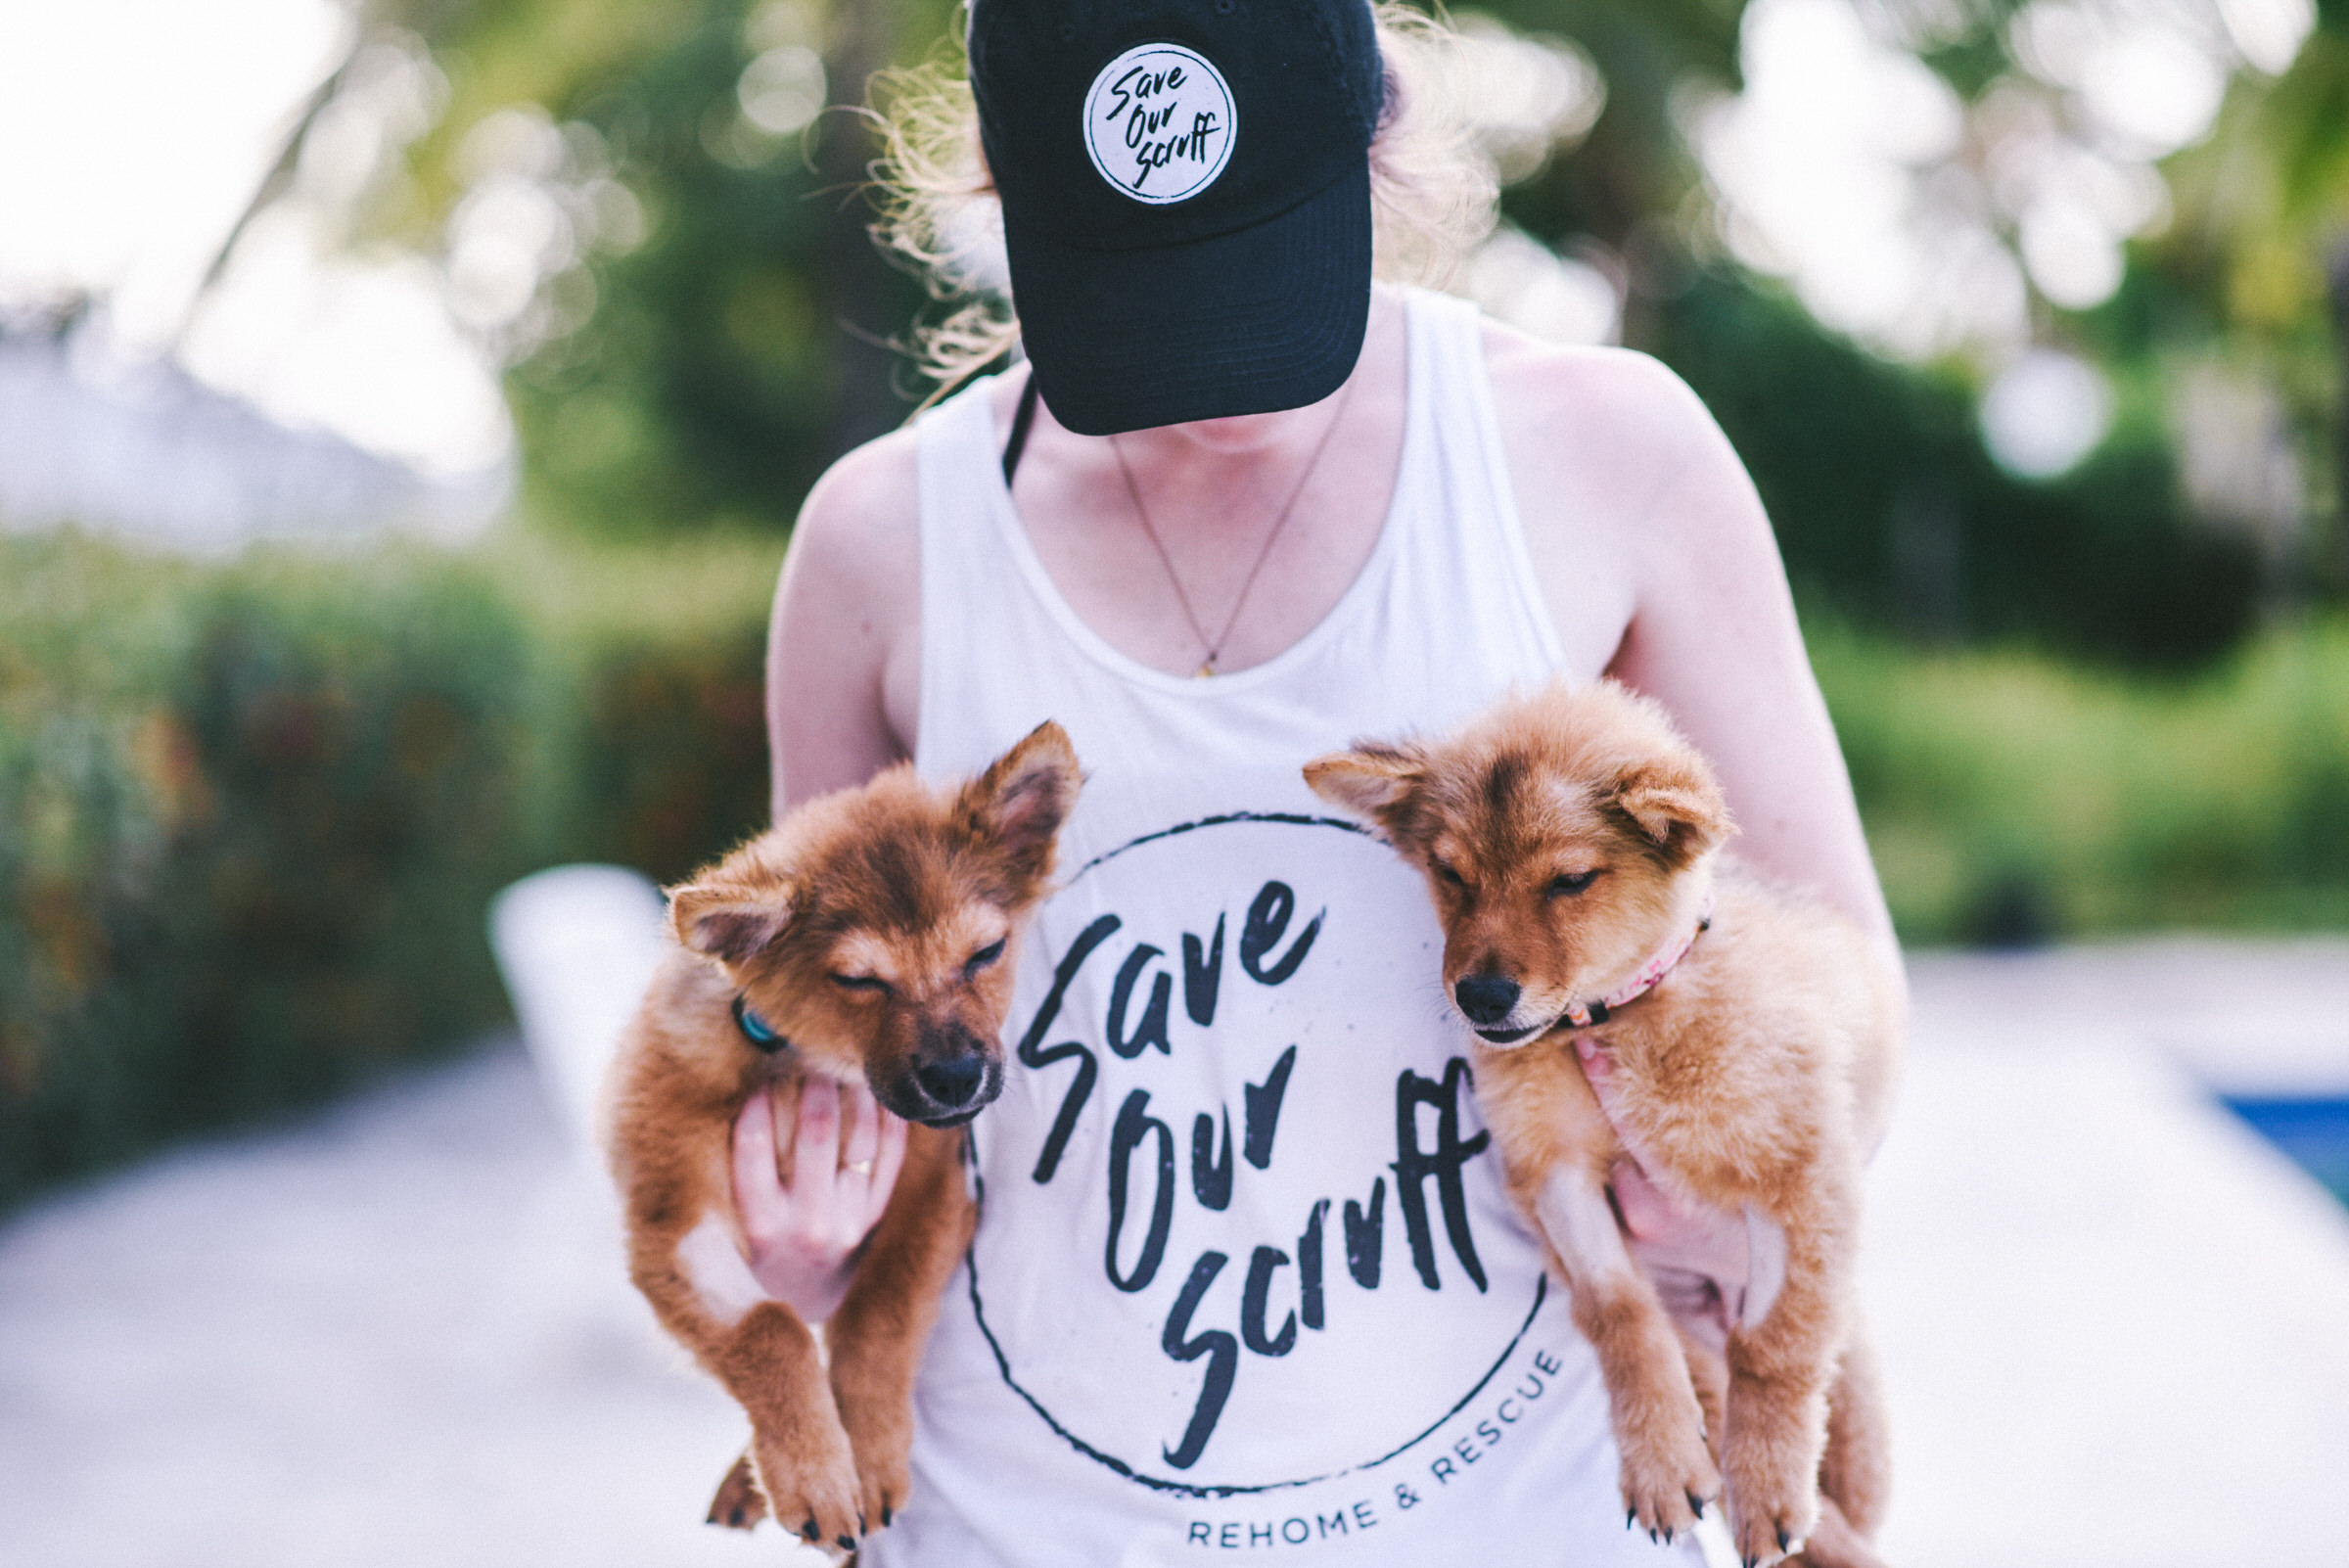 Megan Michelle Photography - Save Our Scruff - 2018 Spay + Neuter Clinic